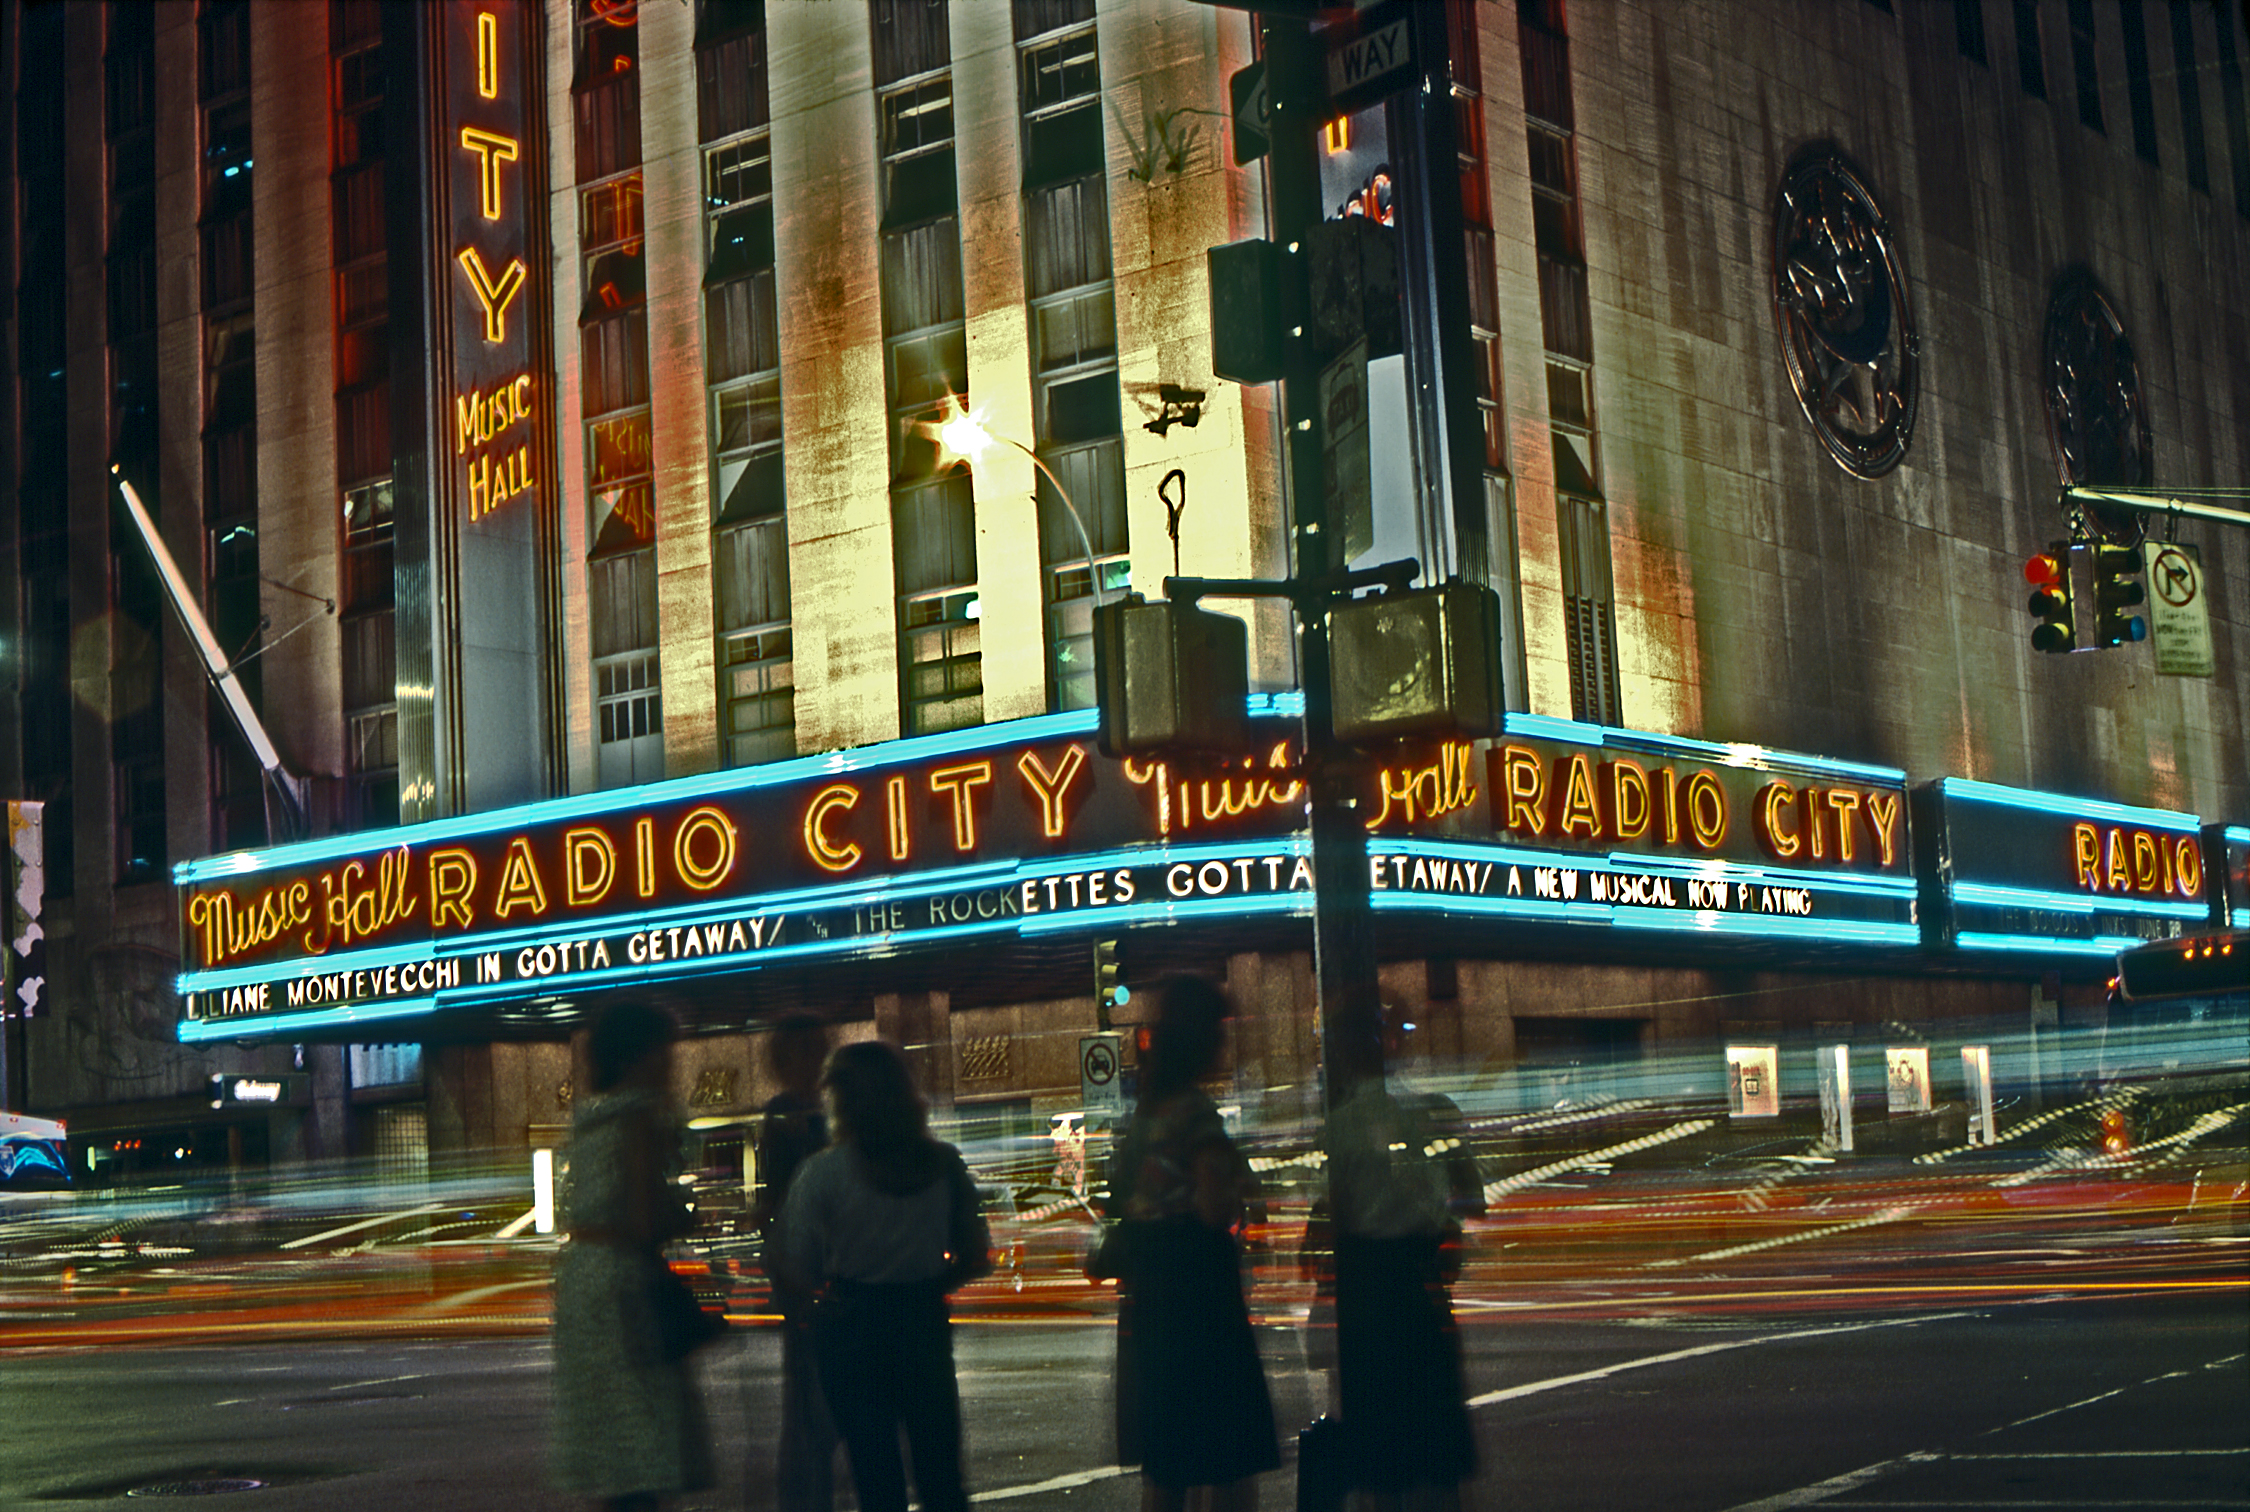 Radio city dating